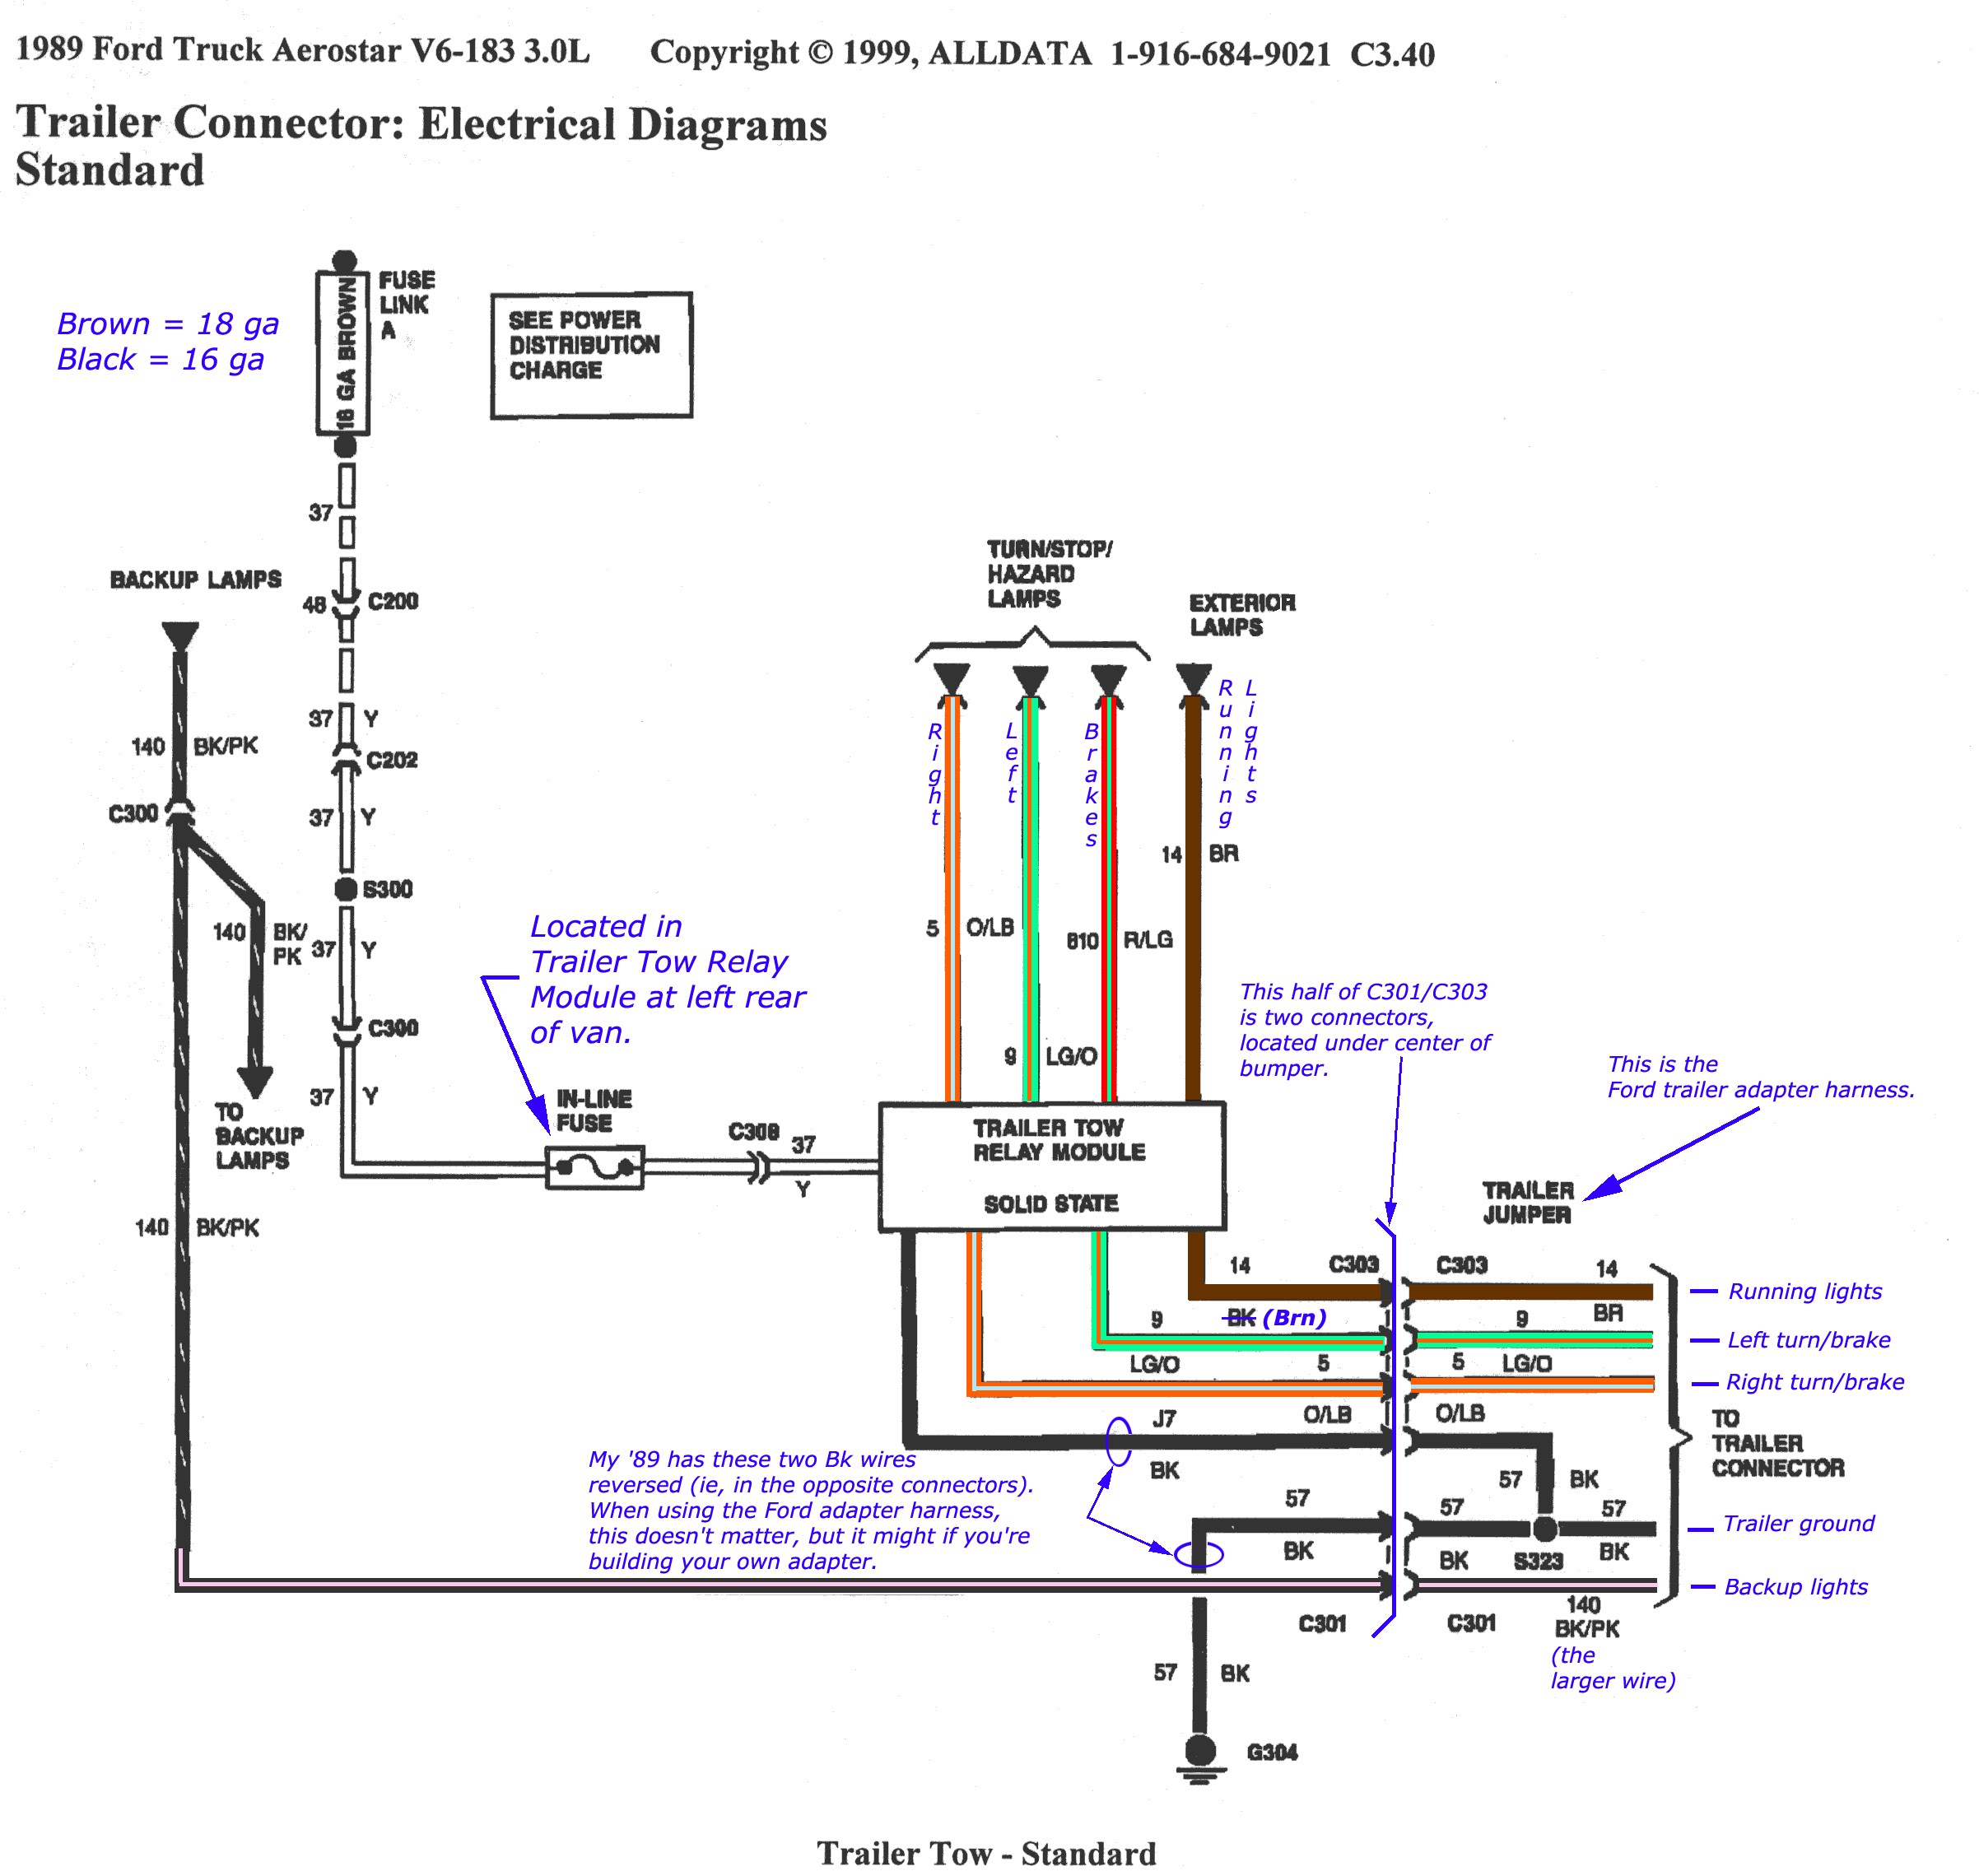 1997 F150 Trailer Wiring - Data Wiring Diagram Detailed - Wiring Diagram For Trailer With Brakes